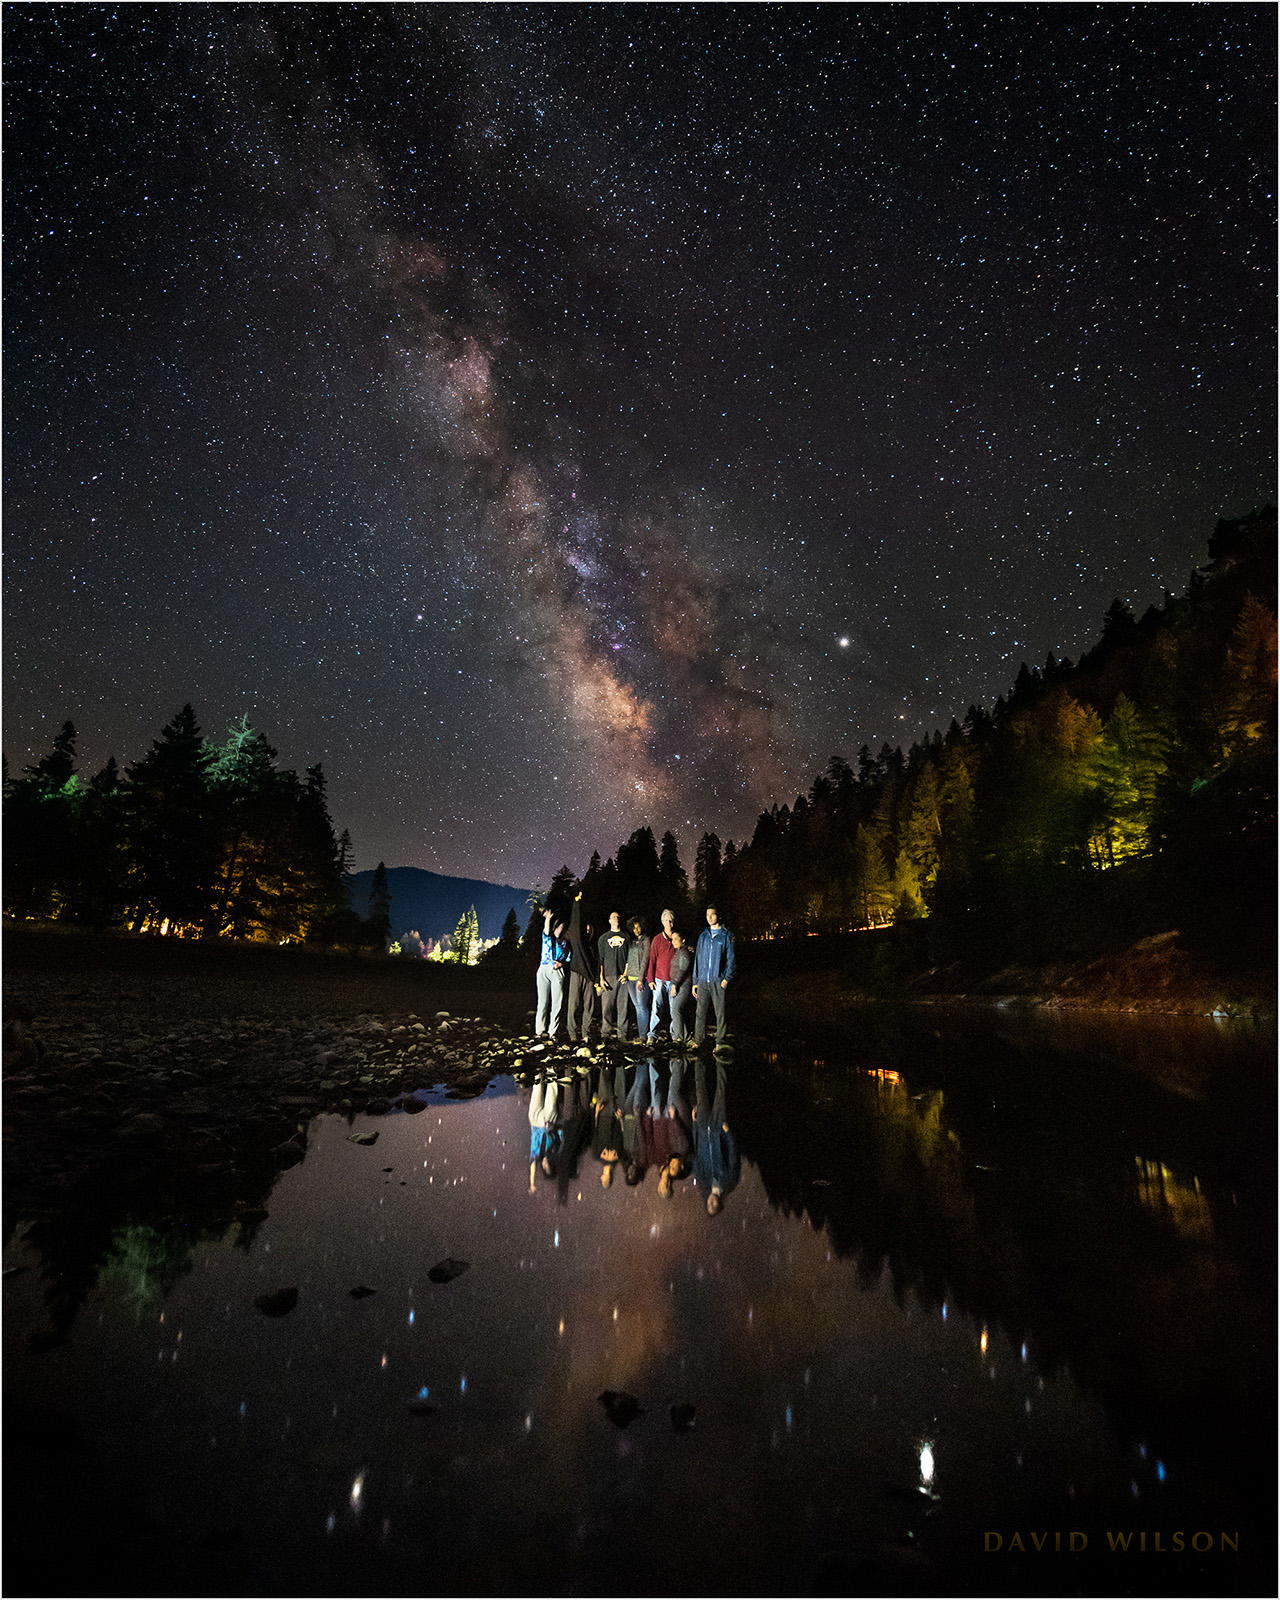 A summer night on the bank of the South Fork Eel River. Right to left: Jerren Wilson, Juanita WIlson, Gianna Wilson, Seth Wilson, Cheyenne Wilson, Iona (friend of Cheyenne). August 2019.